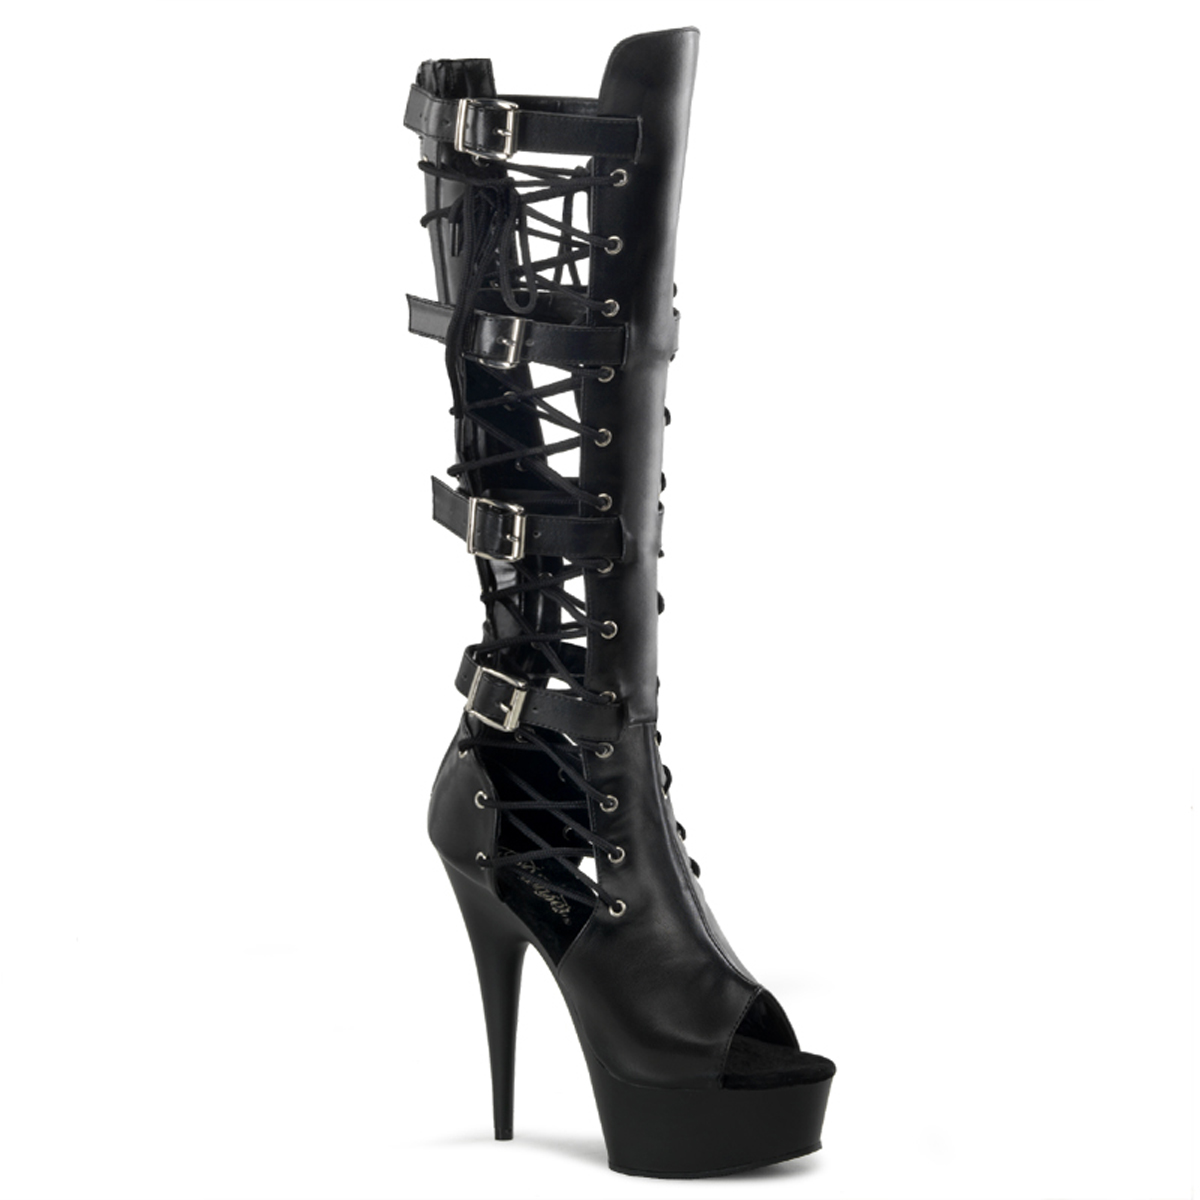 30066a00a73db Platform High Heels DELIGHT-699 - PU Black